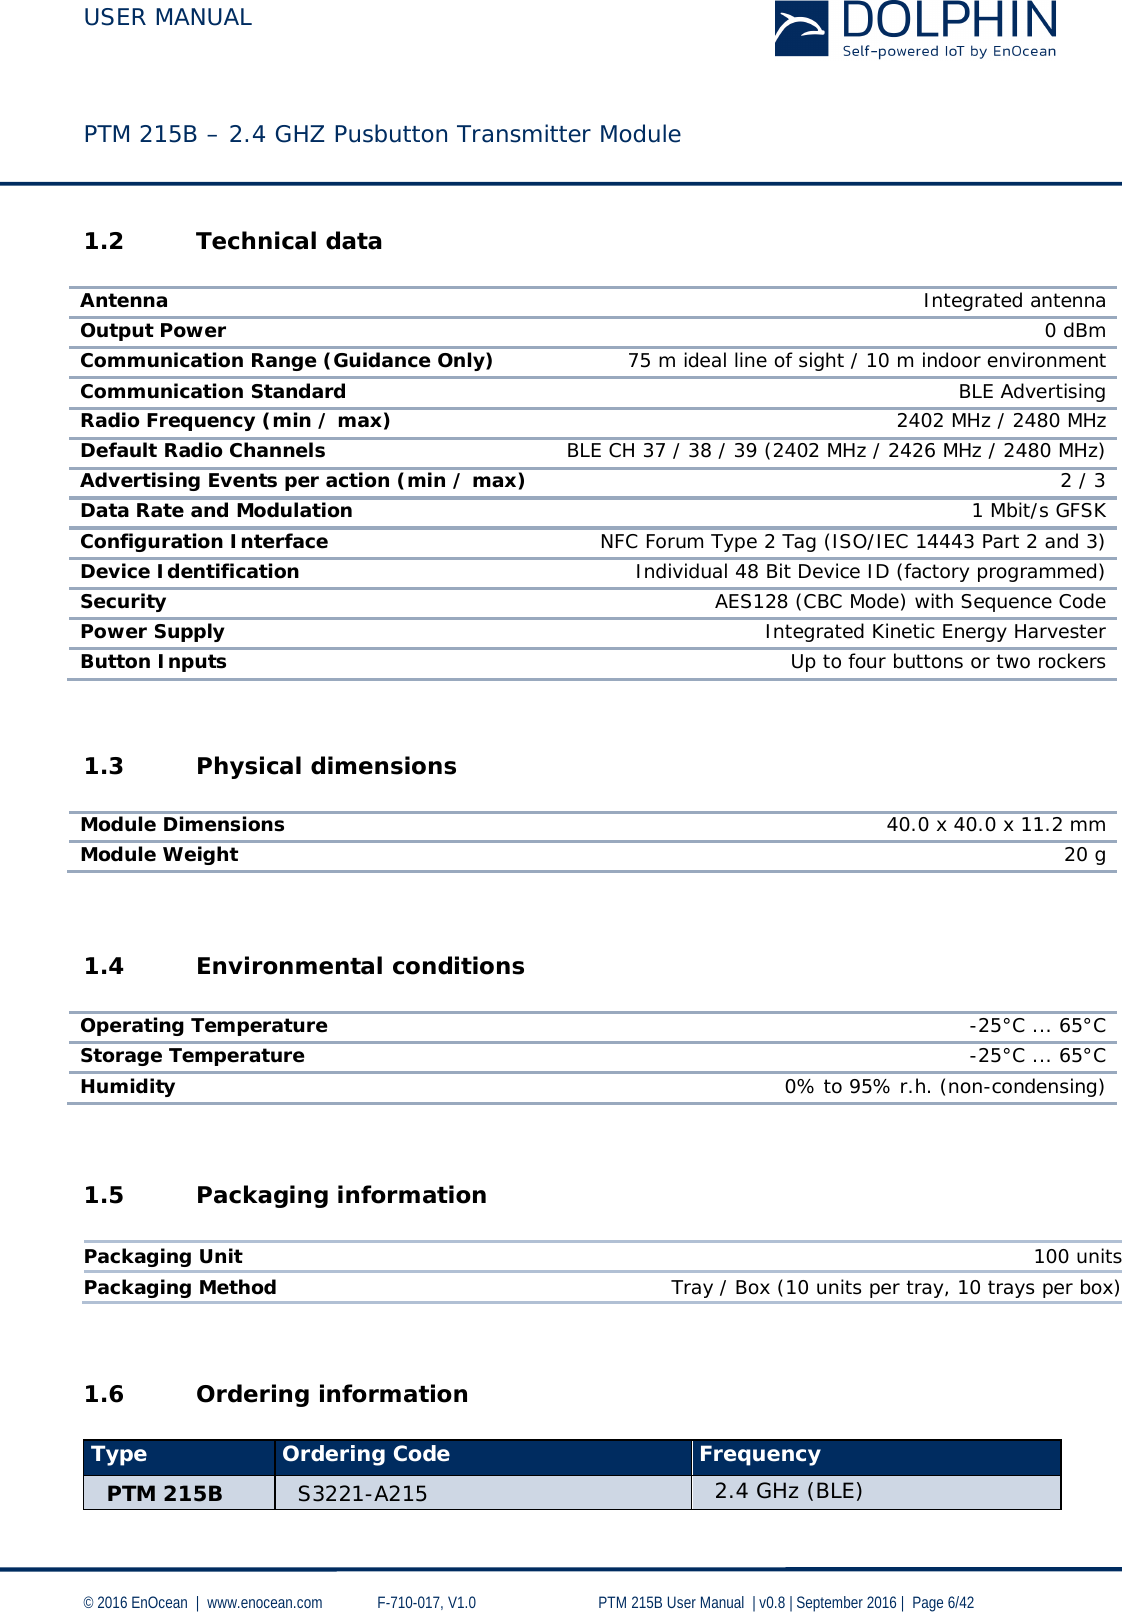 USER MANUAL    PTM 215B – 2.4 GHZ Pusbutton Transmitter Module  © 2016 EnOcean     www.enocean.com   F-710-017, V1.0        PTM 215B User Manual    v0.8   September 2016    Page 6/42  1.2 Technical data   Antenna Integrated antenna Output Power 0 dBm Communication Range (Guidance Only) 75 m ideal line of sight / 10 m indoor environment Communication Standard BLE Advertising Radio Frequency (min / max) 2402 MHz / 2480 MHz Default Radio Channels BLE CH 37 / 38 / 39 (2402 MHz / 2426 MHz / 2480 MHz) Advertising Events per action (min / max) 2 / 3 Data Rate and Modulation 1 Mbit/s GFSK Configuration Interface NFC Forum Type 2 Tag (ISO/IEC 14443 Part 2 and 3) Device Identification Individual 48 Bit Device ID (factory programmed) Security AES128 (CBC Mode) with Sequence Code Power Supply Integrated Kinetic Energy Harvester  Button Inputs Up to four buttons or two rockers   1.3 Physical dimensions   Module Dimensions 40.0 x 40.0 x 11.2 mm Module Weight 20 g  1.4 Environmental conditions  Operating Temperature -25°C ... 65°C Storage Temperature -25°C ... 65°C Humidity 0% to 95% r.h. (non-condensing)   1.5 Packaging information  Packaging Unit 100 units Packaging Method Tray / Box (10 units per tray, 10 trays per box)   1.6 Ordering information  Type Ordering Code Frequency PTM 215B S3221-A215 2.4 GHz (BLE)